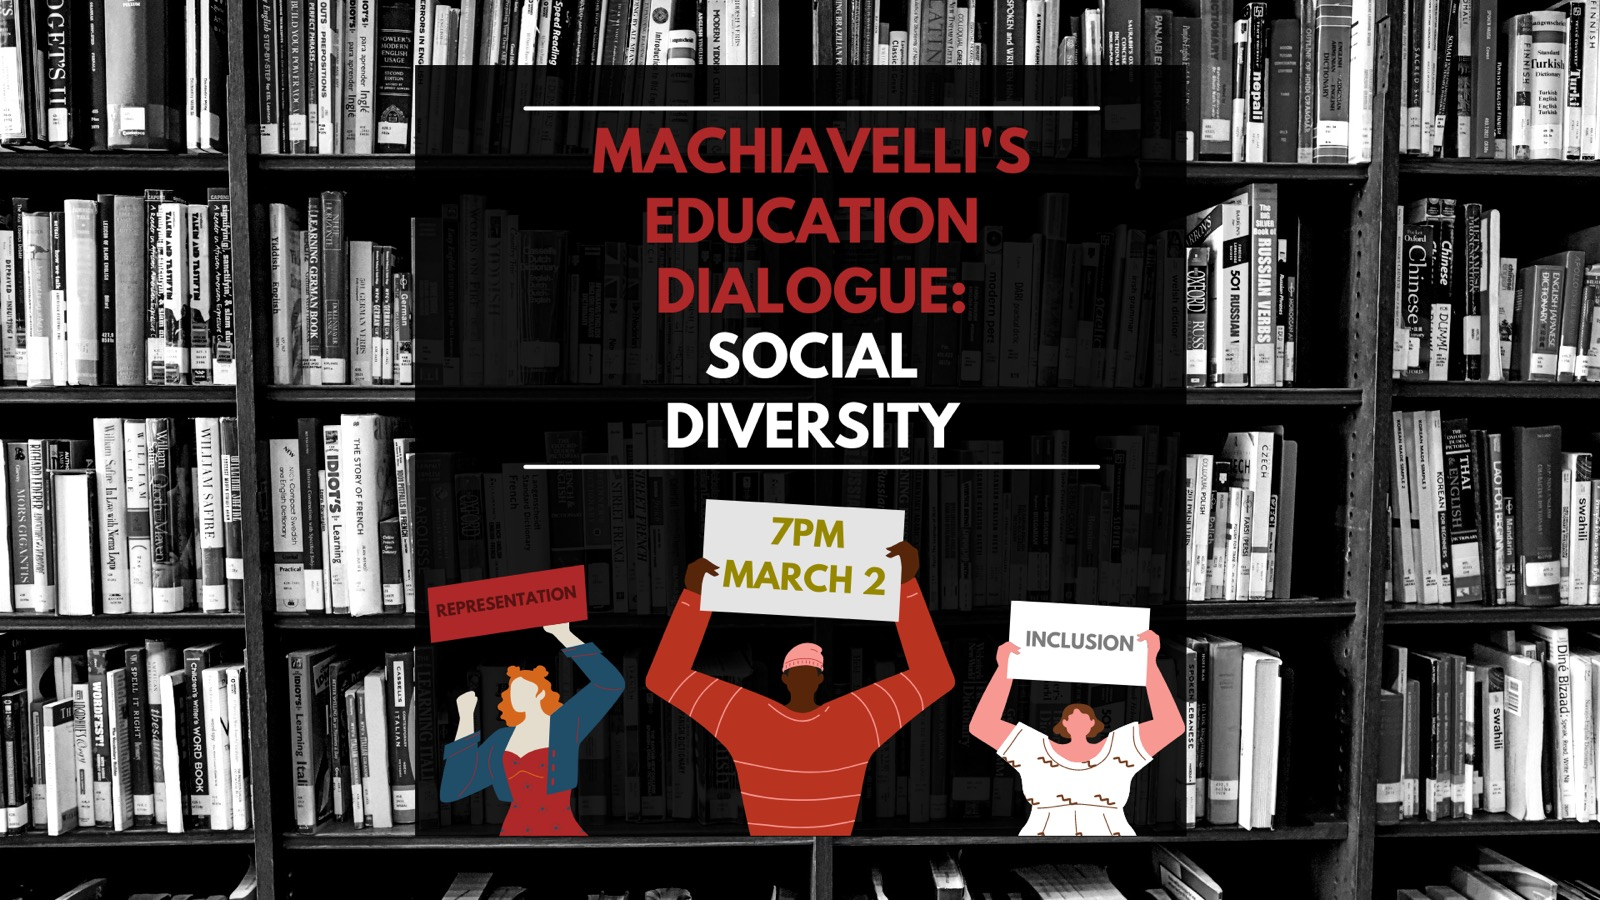 Machiavelli's Education Dialogue: Social Diversity